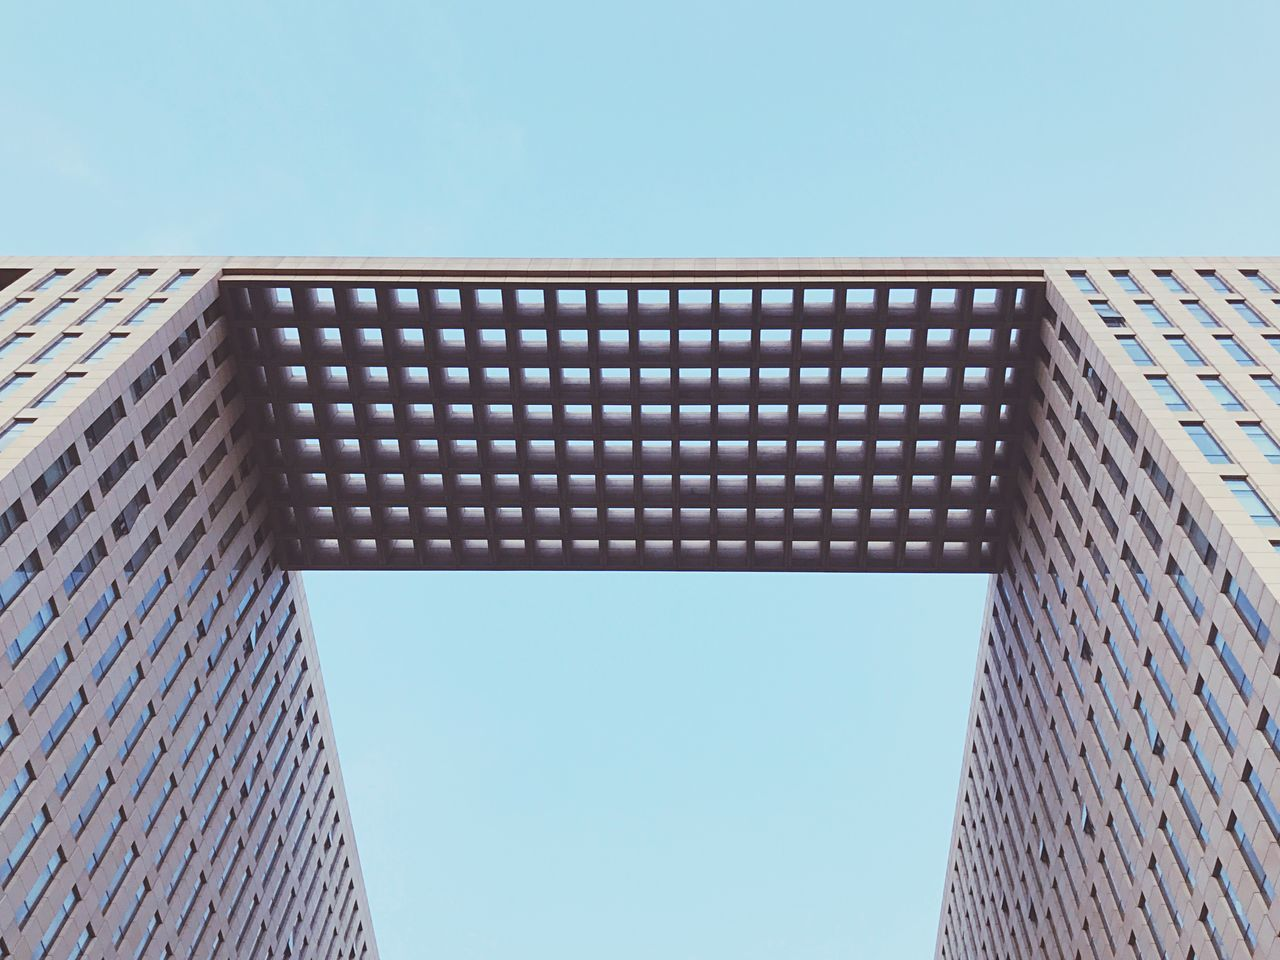 Architecture Built Structure Building Exterior Skyscraper Low Angle View Clear Sky Modern Day Blue No People Outdoors Tall City Sky